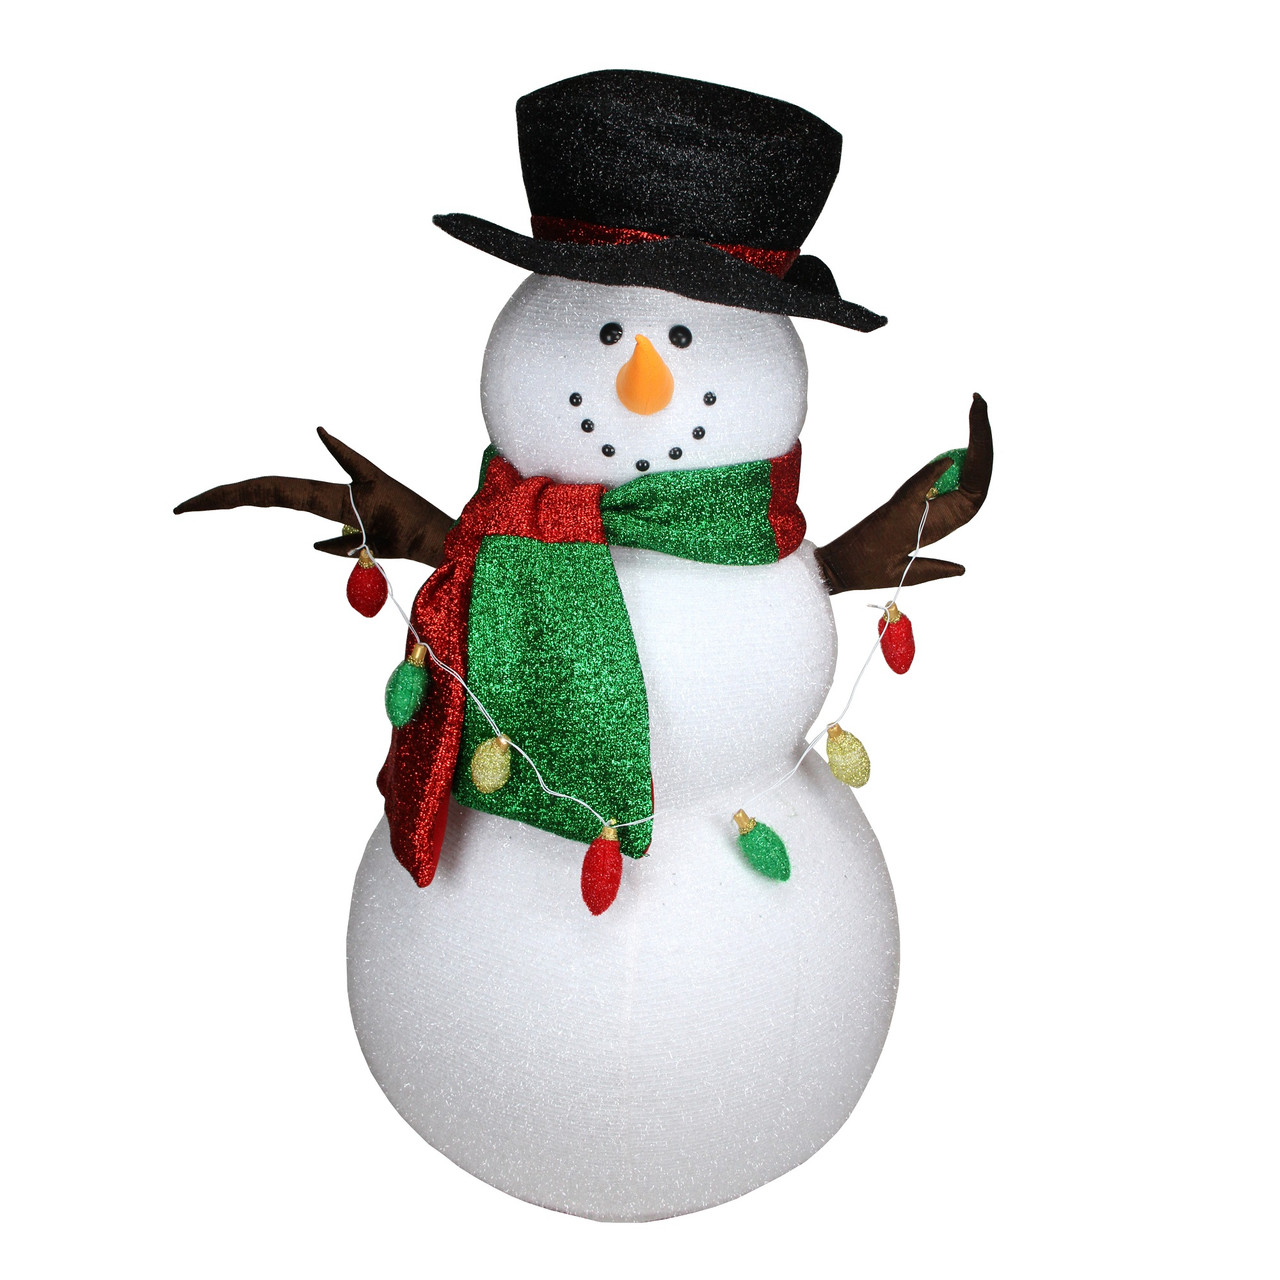 5u0027 Musical Inflatable Snowman Christmas Outdoor Decoration with LED Lights - 32614734  sc 1 st  Christmas Central & 5u0027 Musical Inflatable Snowman Christmas Outdoor Decoration with LED ...